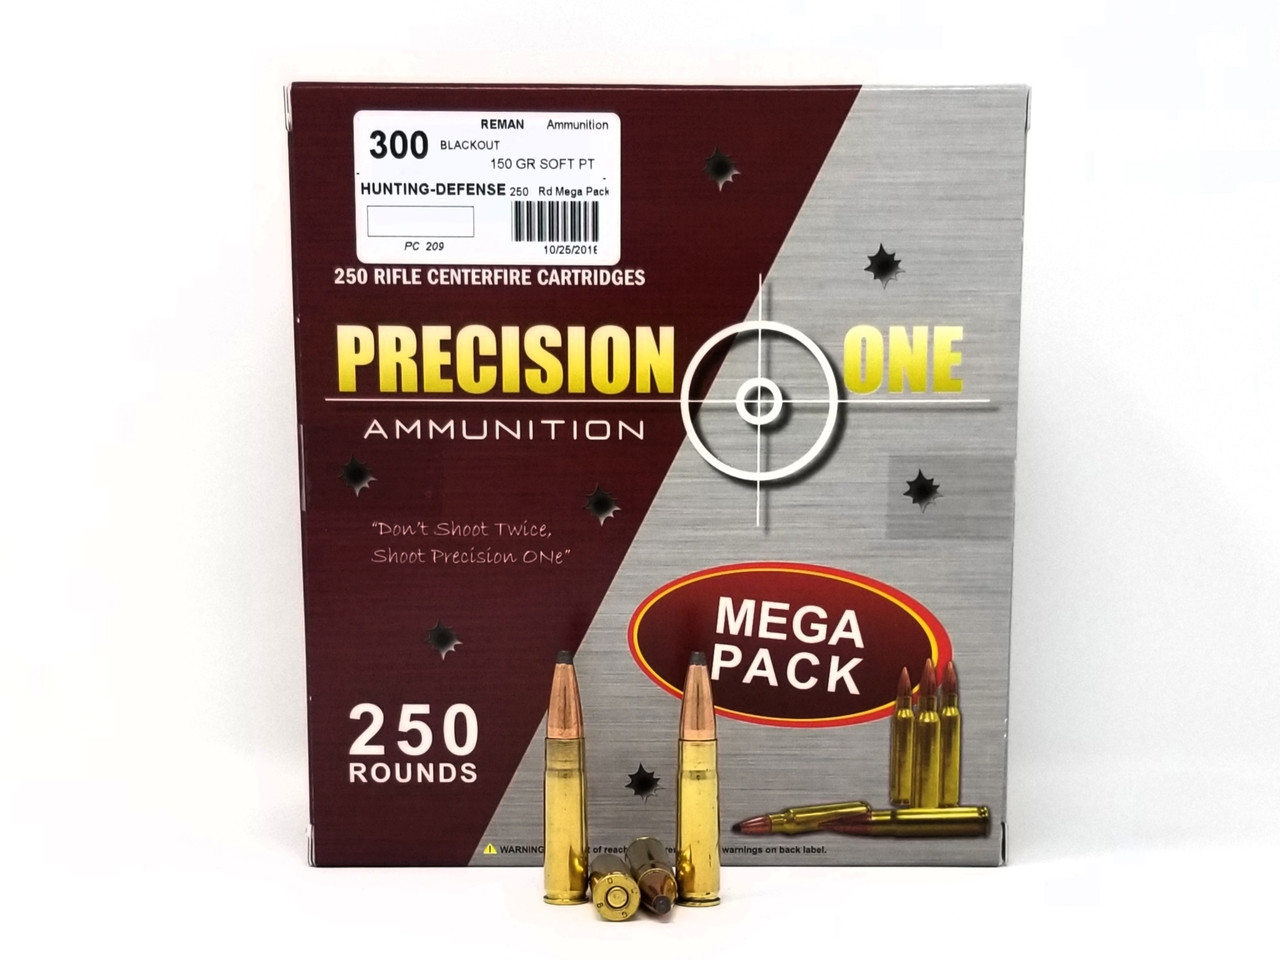 300 AAC Blackout Ammo | 300 ACC Ammo | Blackout Ammo